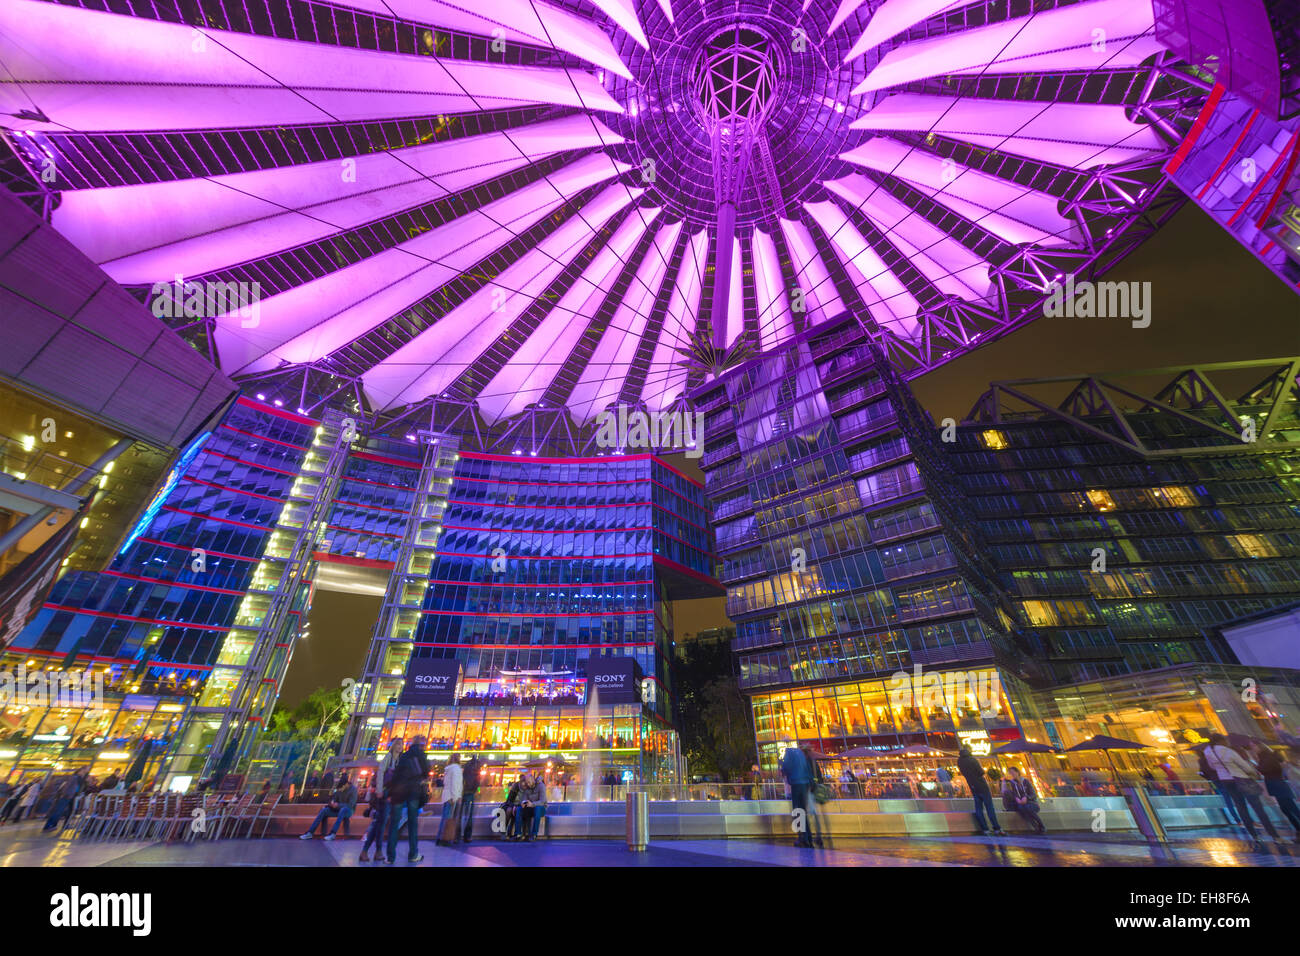 Sony Center at night. The center is a public space located in the Potsdamer Platz financial district of Berlin, - Stock Image